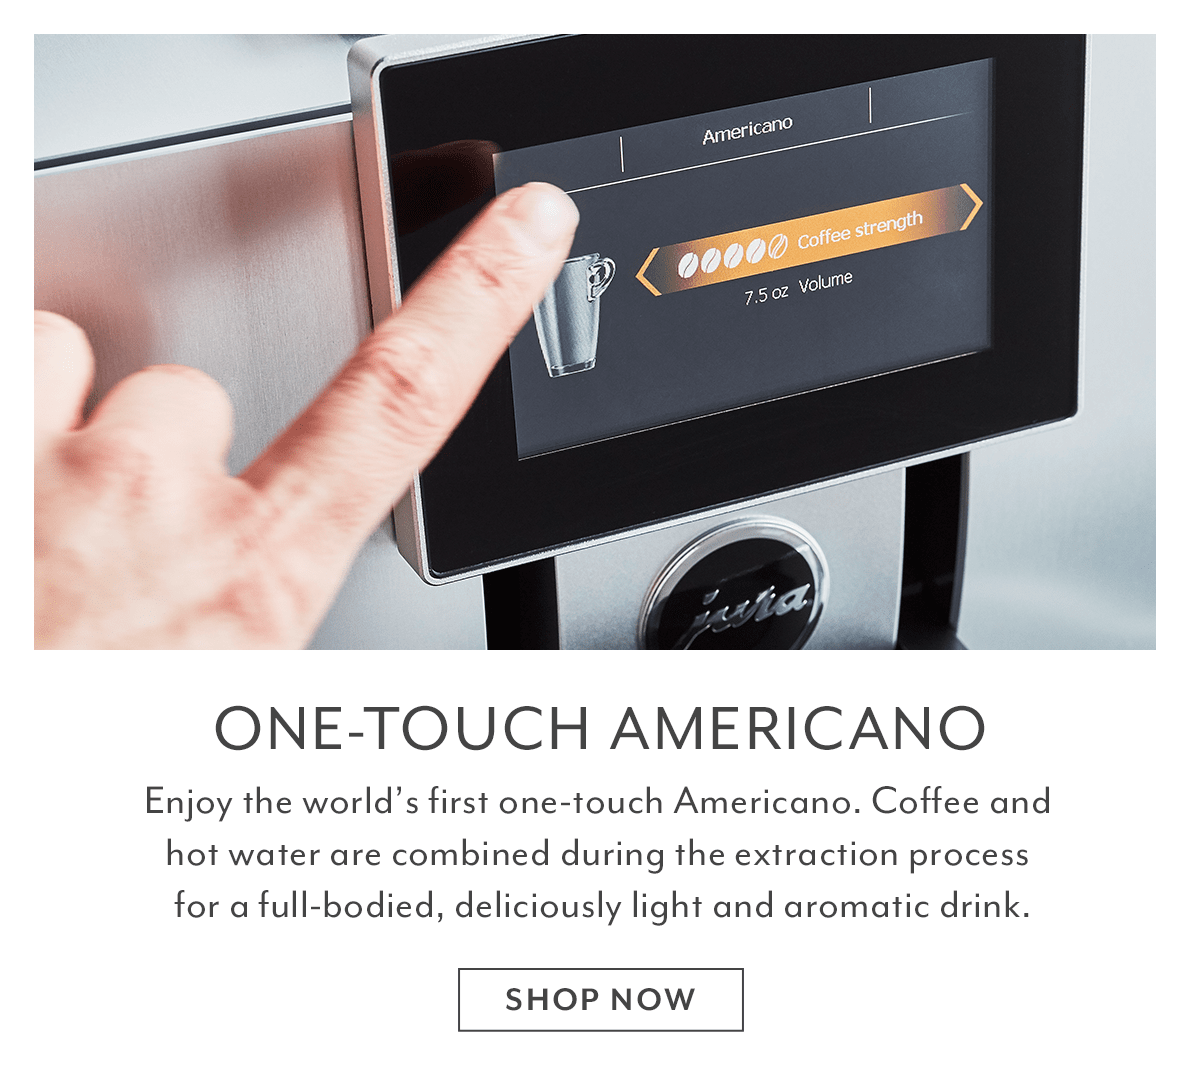 One-Touch Americano